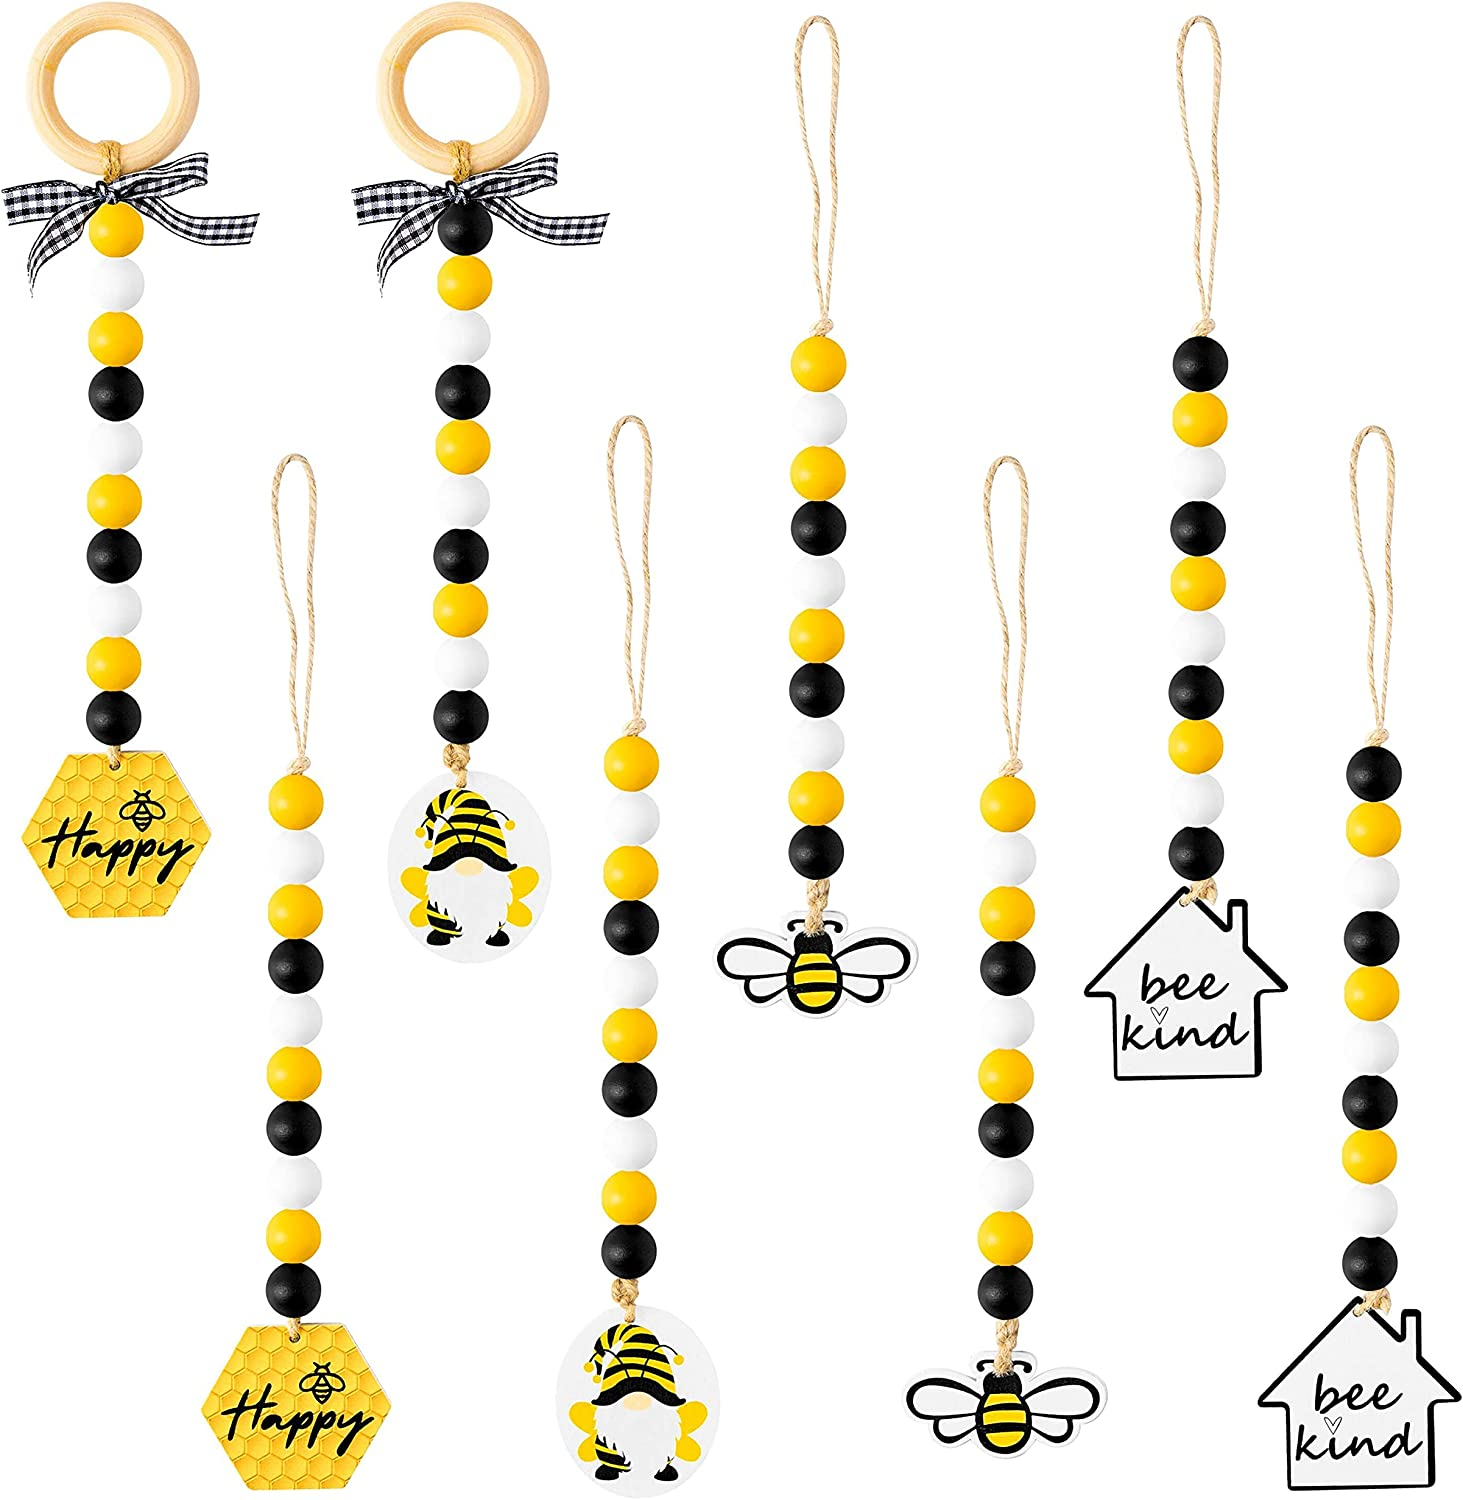 WATINC 8pcs Bee Wooden Bead Garland Ornament with Honeybee Pendant, Hanging Wood Ring Beads Tassels Rustic Farmhouse Tiered Tray Decor for Lemon Yellow Spring Summer Holiday Birthday Party Photo Props